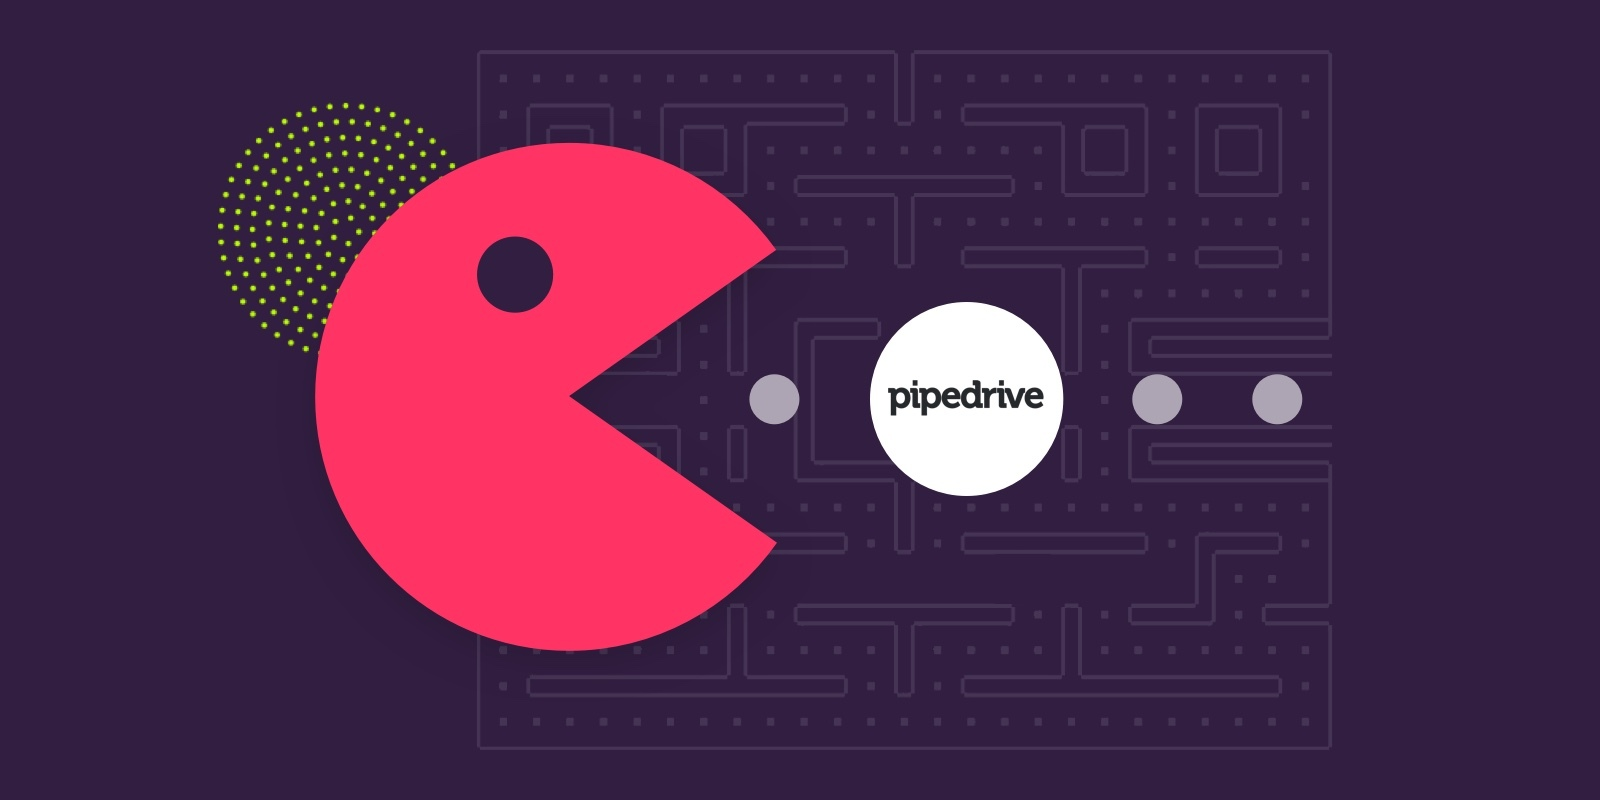 5 Reasons to Go with Copper over Pipedrive